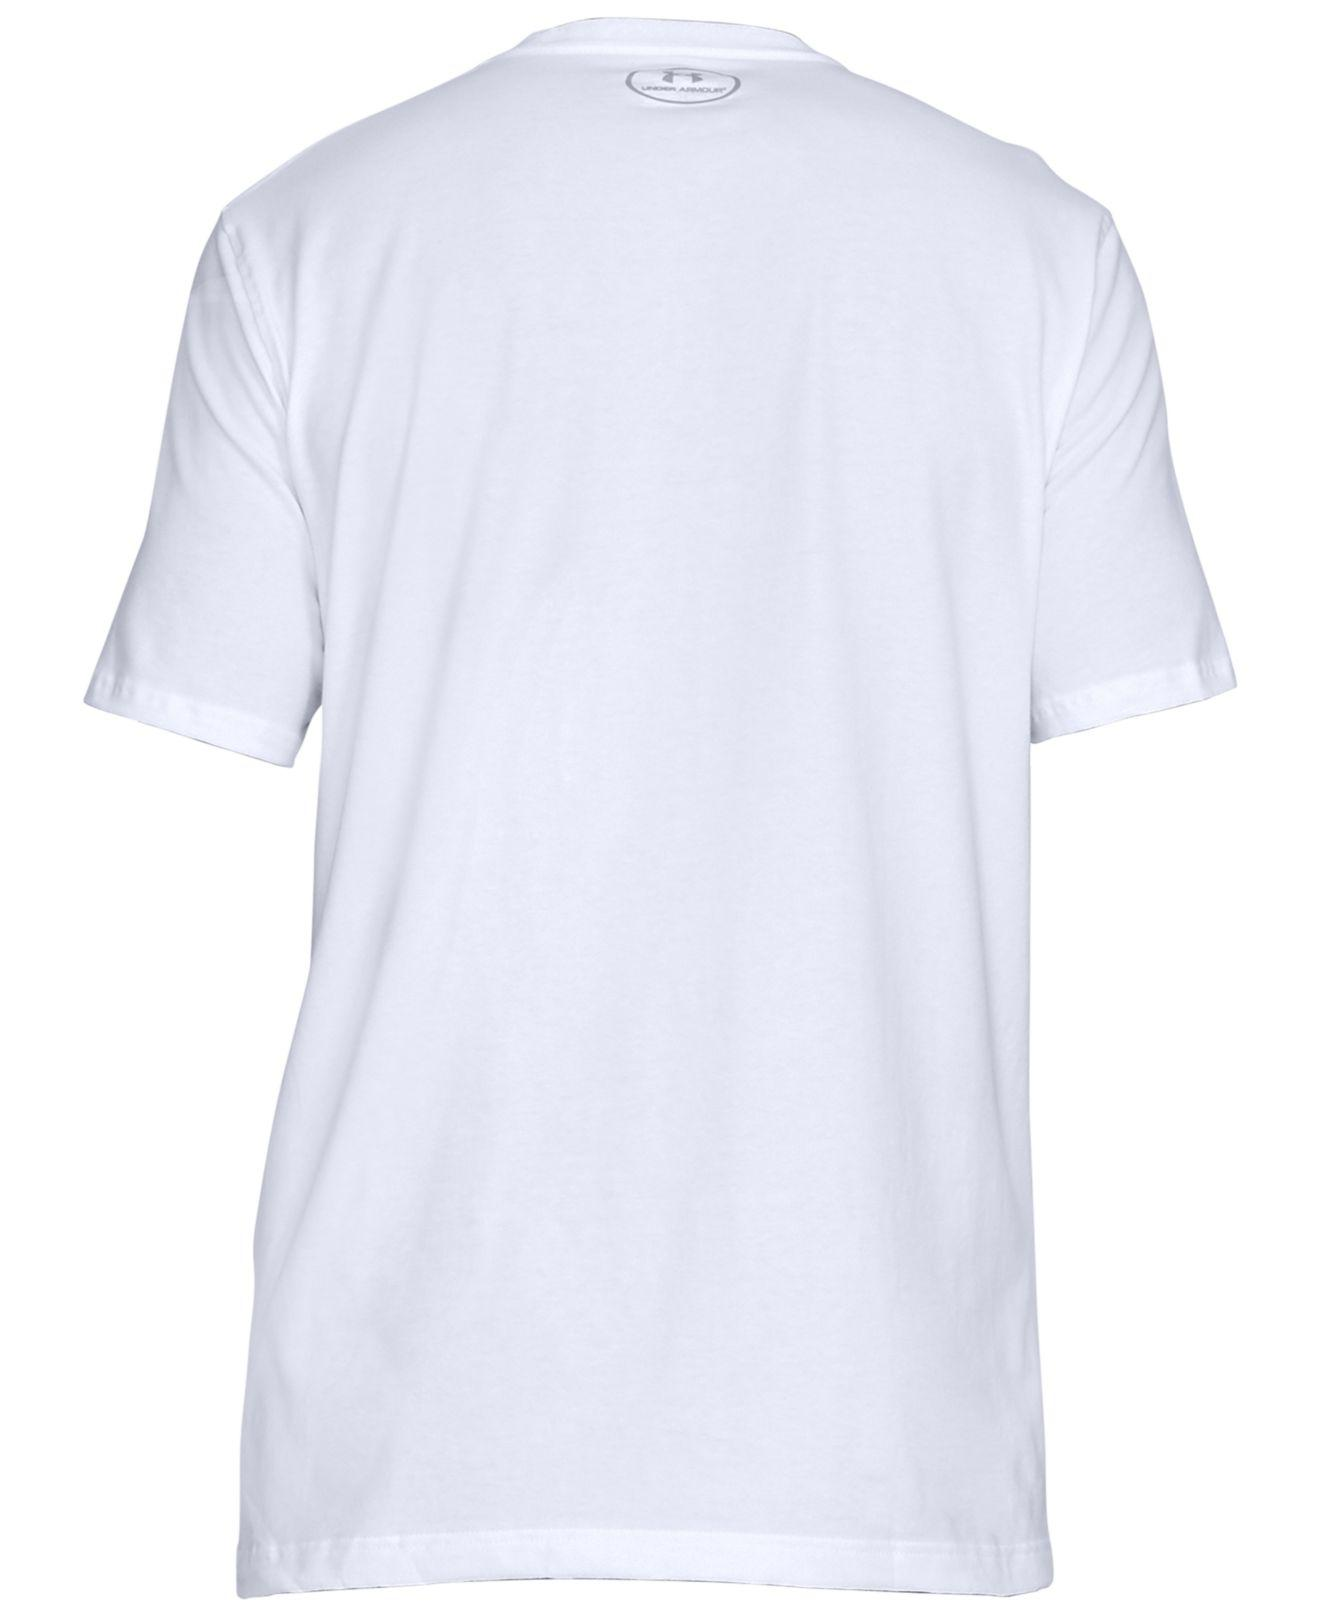 88eb79b6d Under Armour Charged Cotton® Colorblocked-logo T-shirt in White for ...